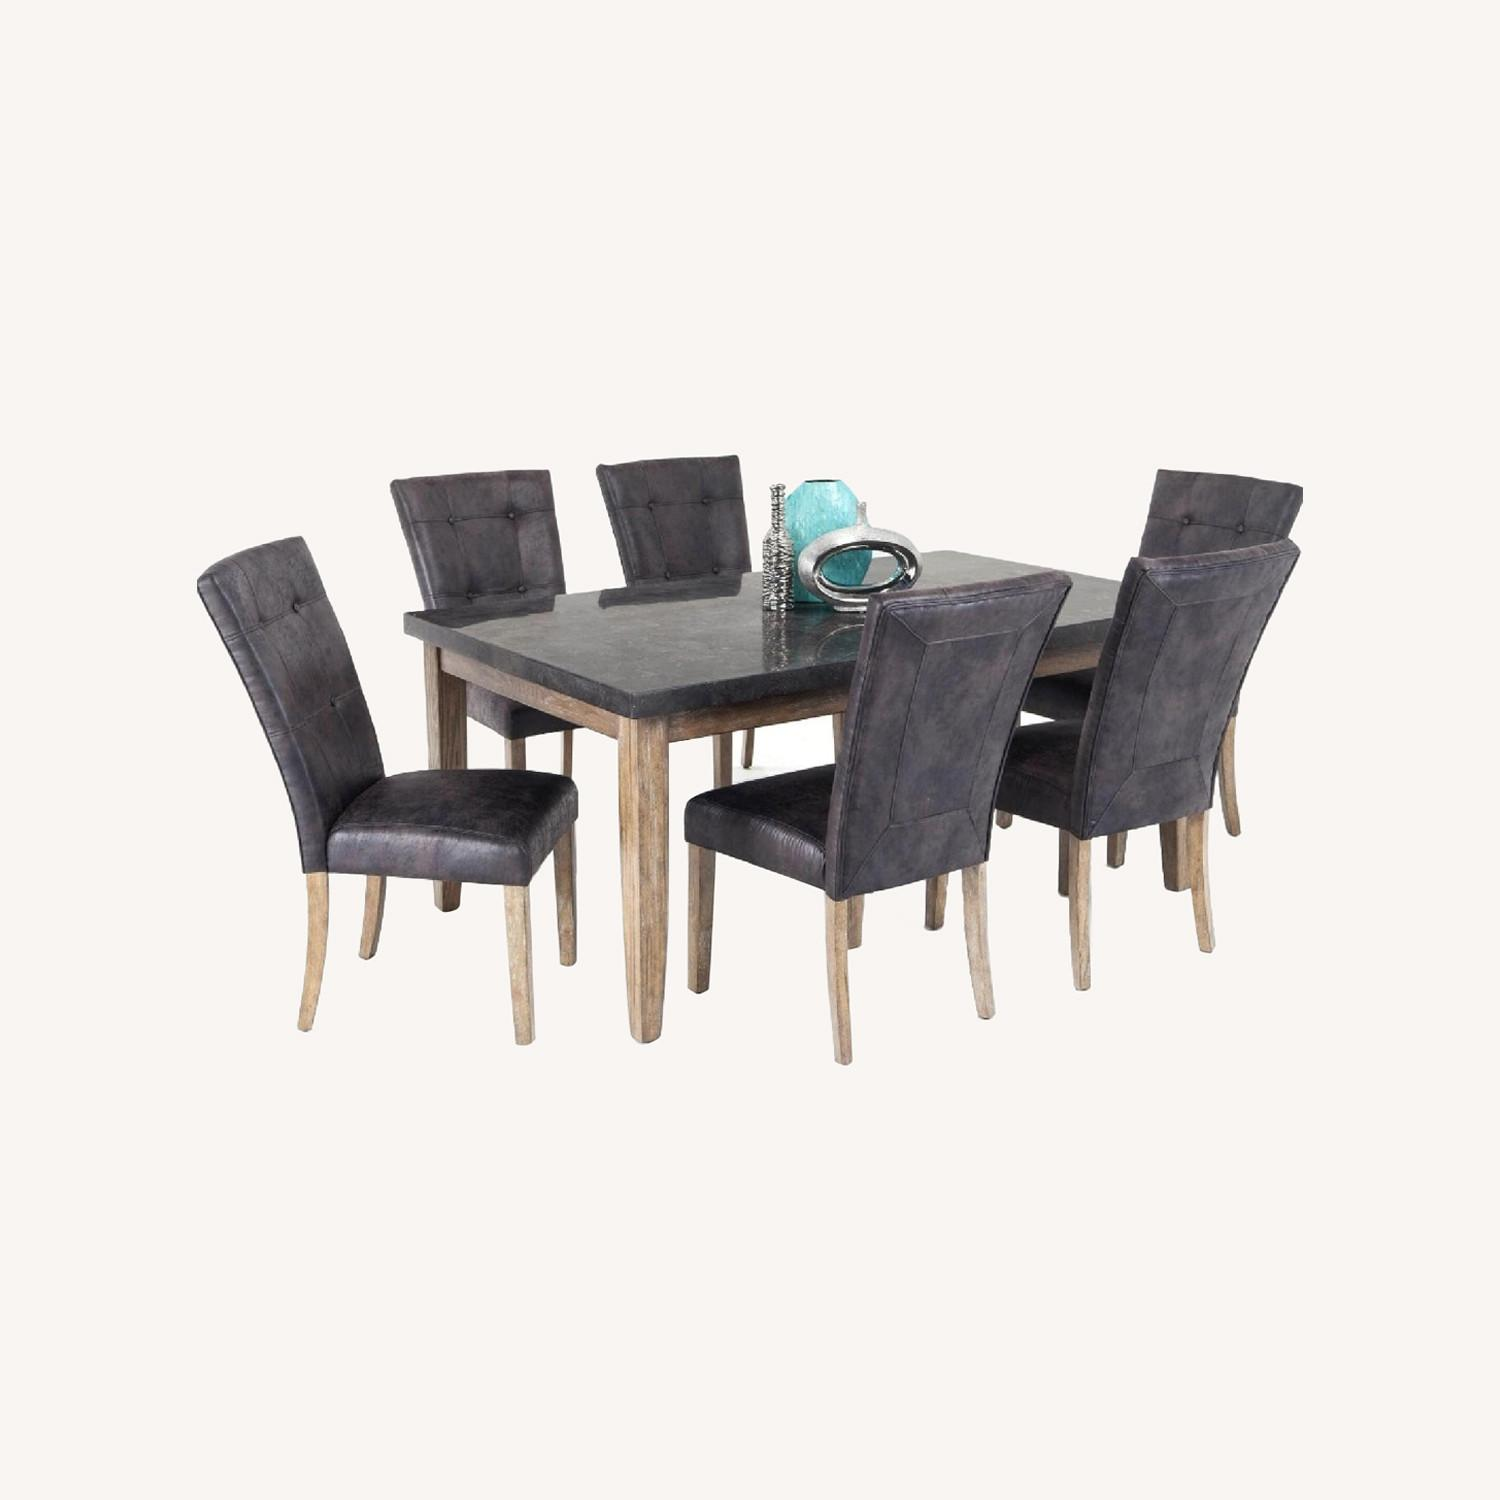 Bob's Discount Granite Table Dining Set with 6 Chairs - image-0